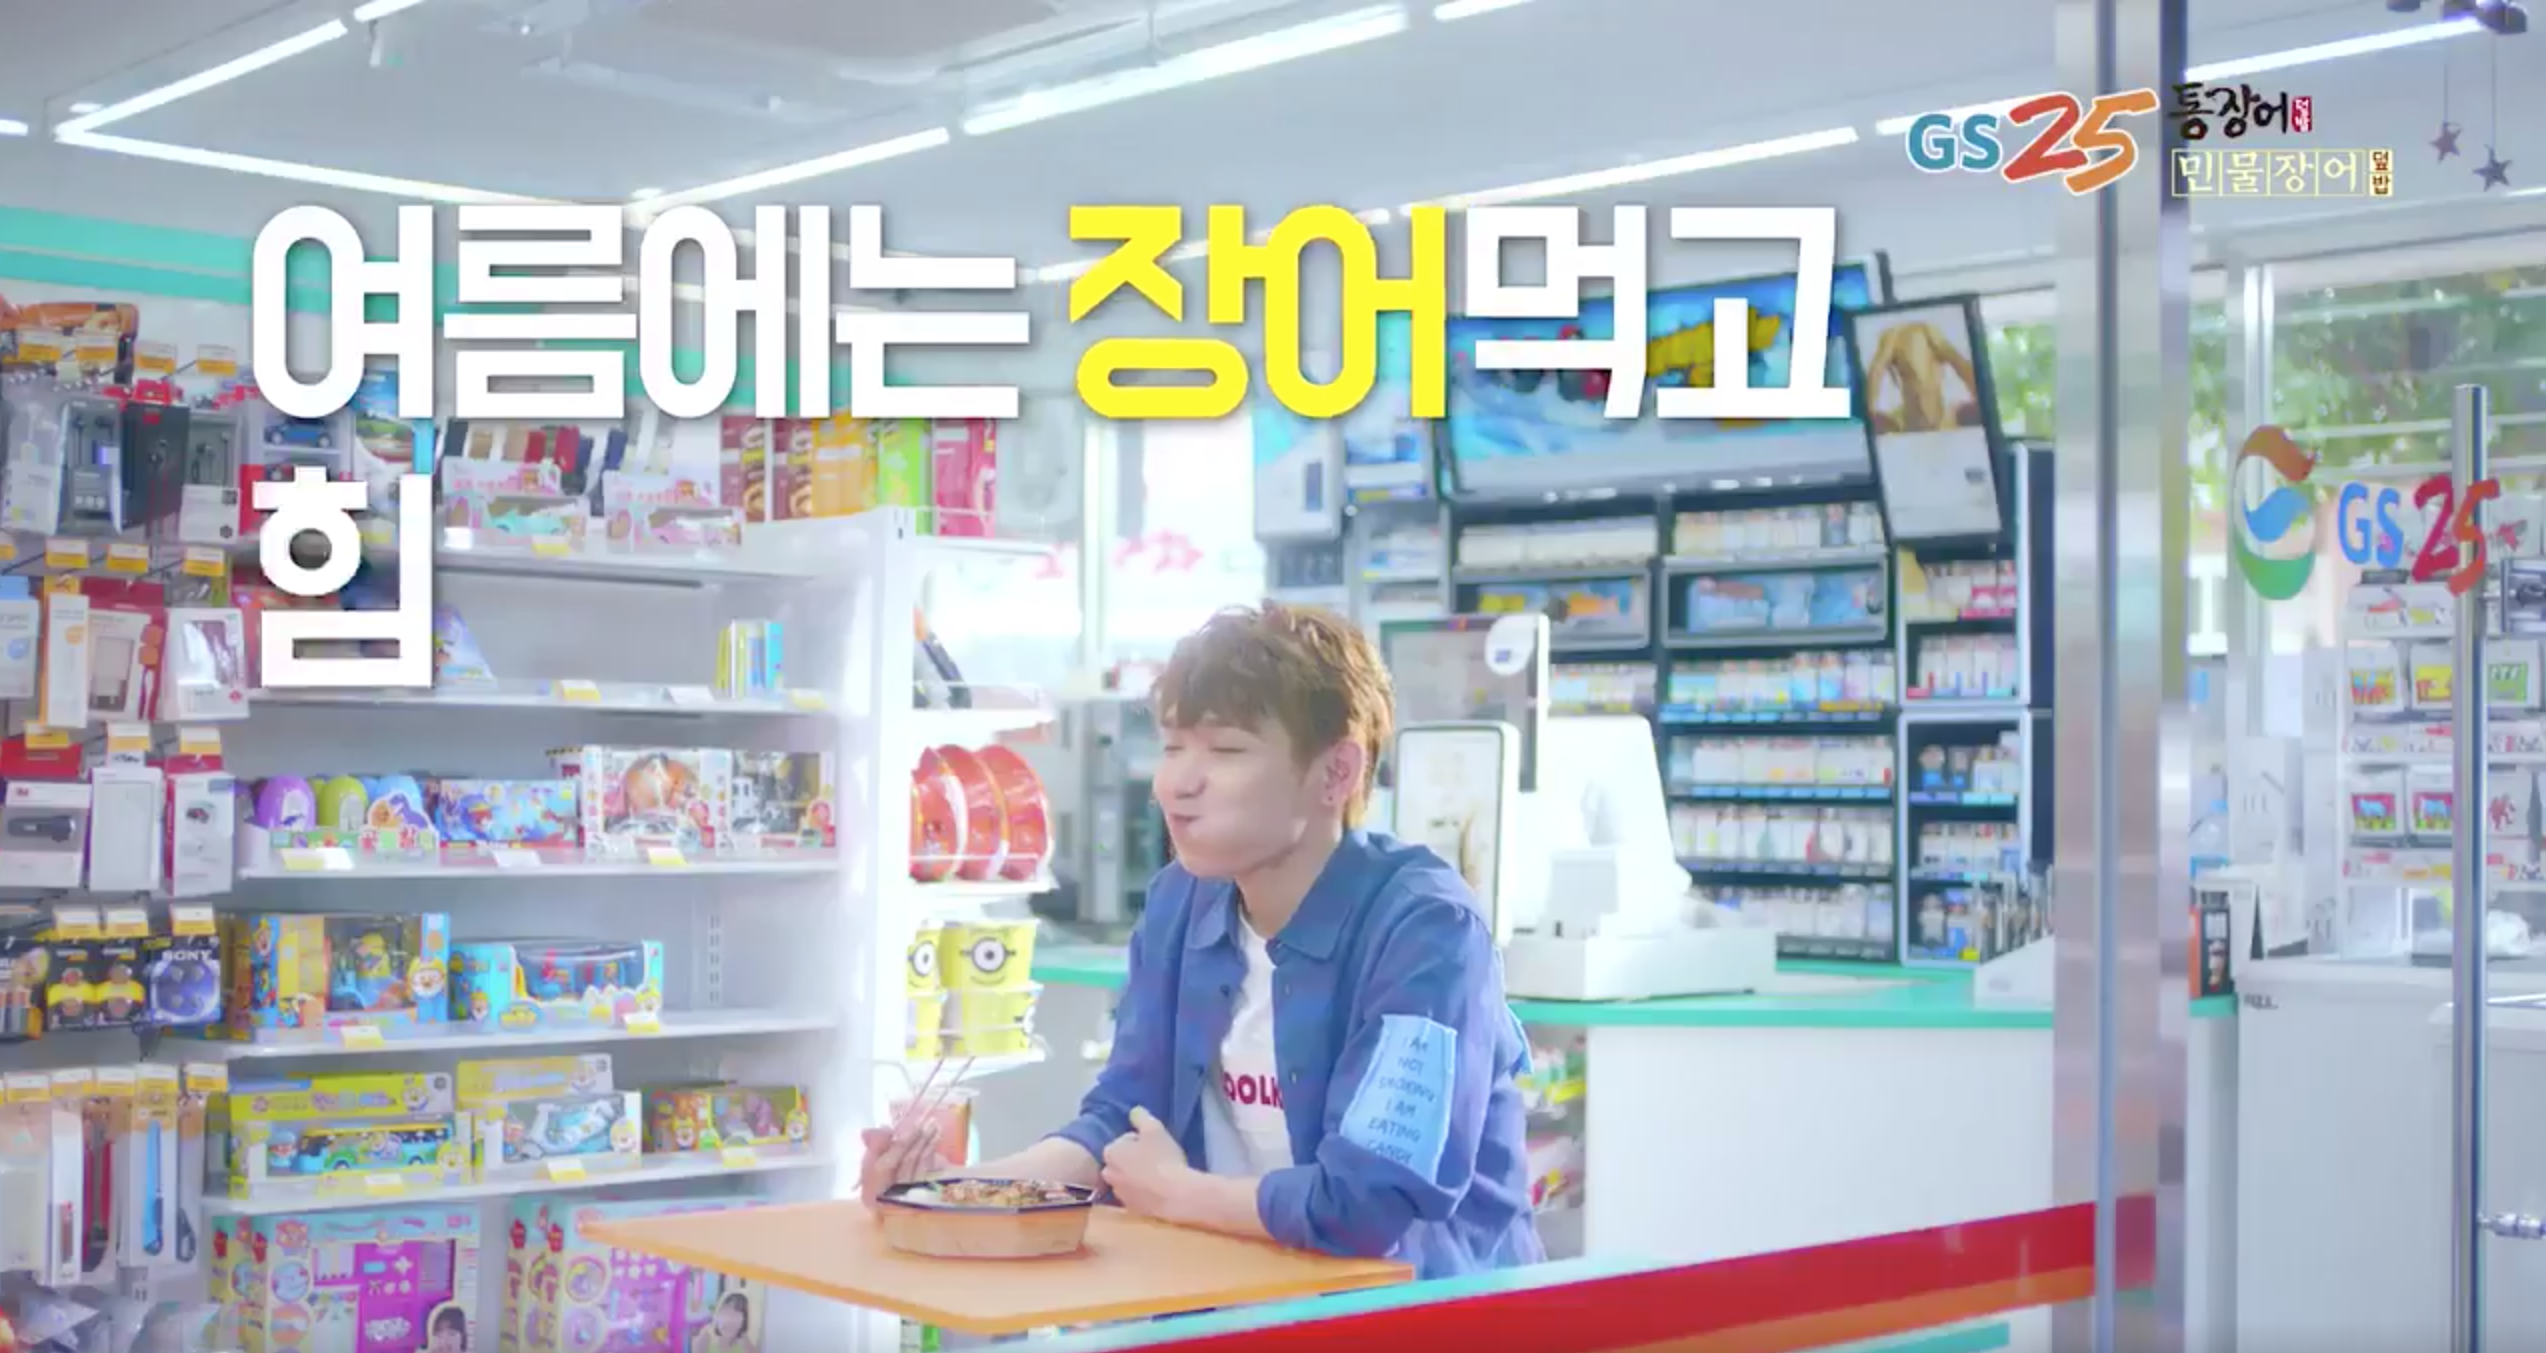 Takada Kenta From Produce 101 Season 2 Scores First Commercial Gig With GS25